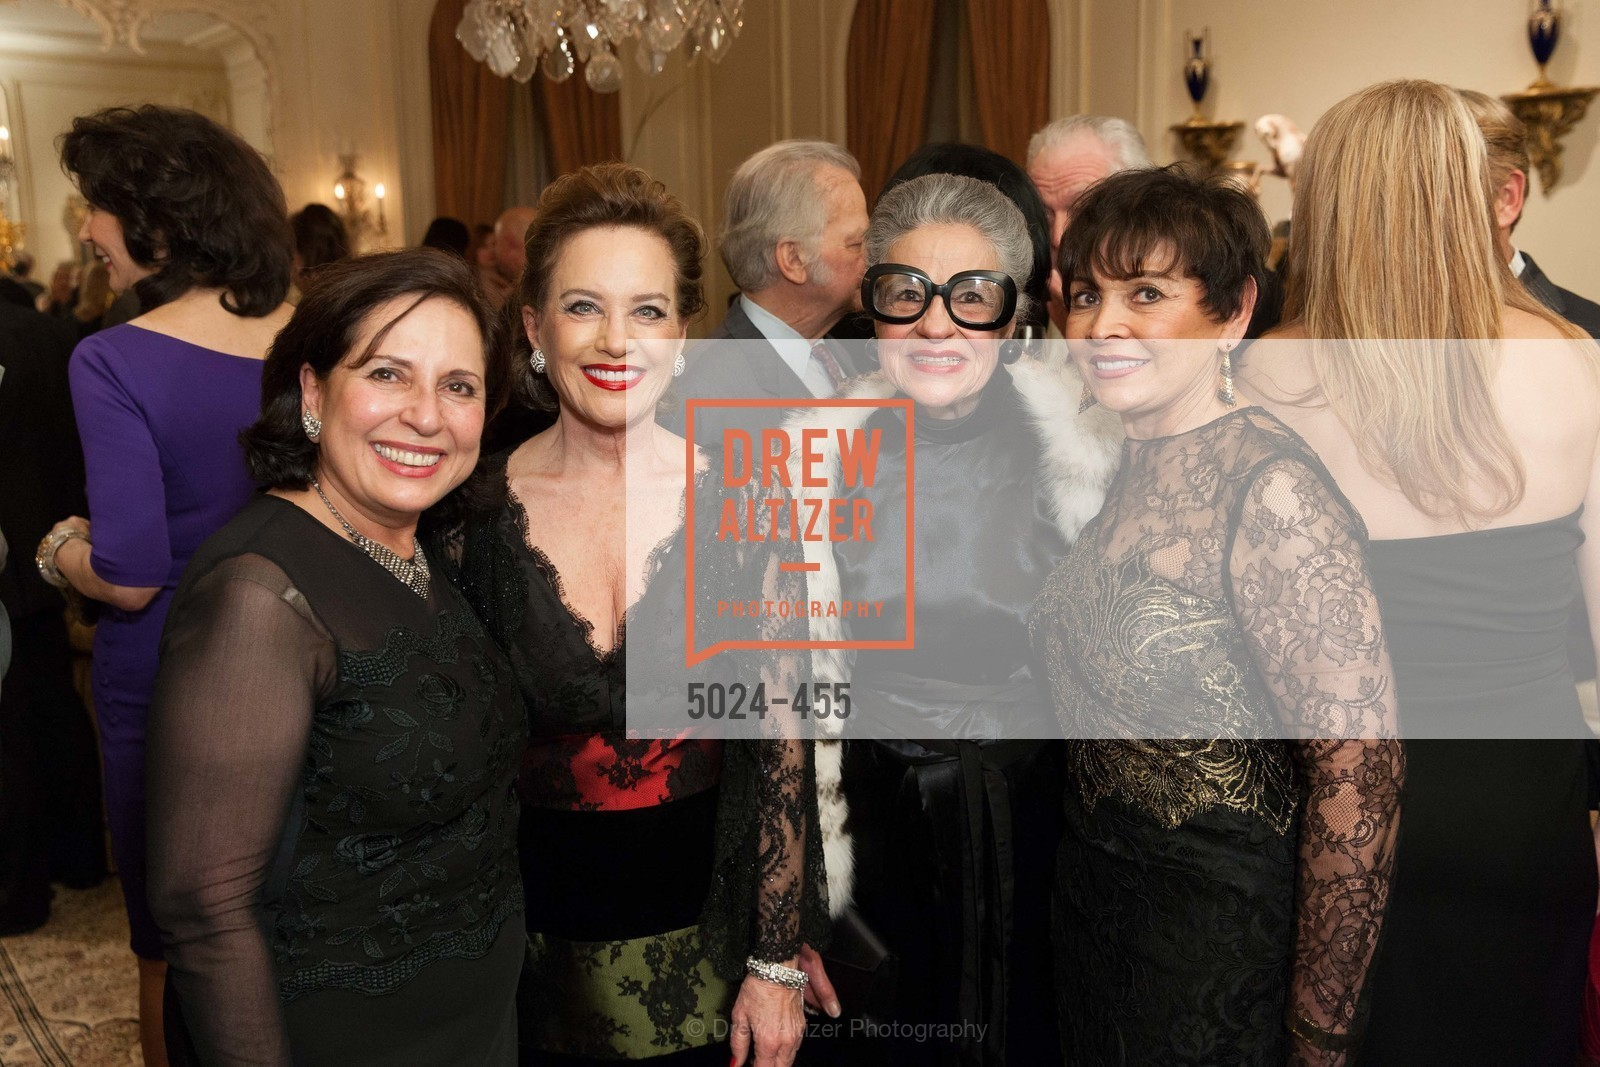 Robin Collins, Joy Venturini Bianchi, Marti McMahon Diamond, SAN FRANCISCO BALLET Grand Benefactors Reception, US. US, January 8th, 2014,Drew Altizer, Drew Altizer Photography, full-service agency, private events, San Francisco photographer, photographer california